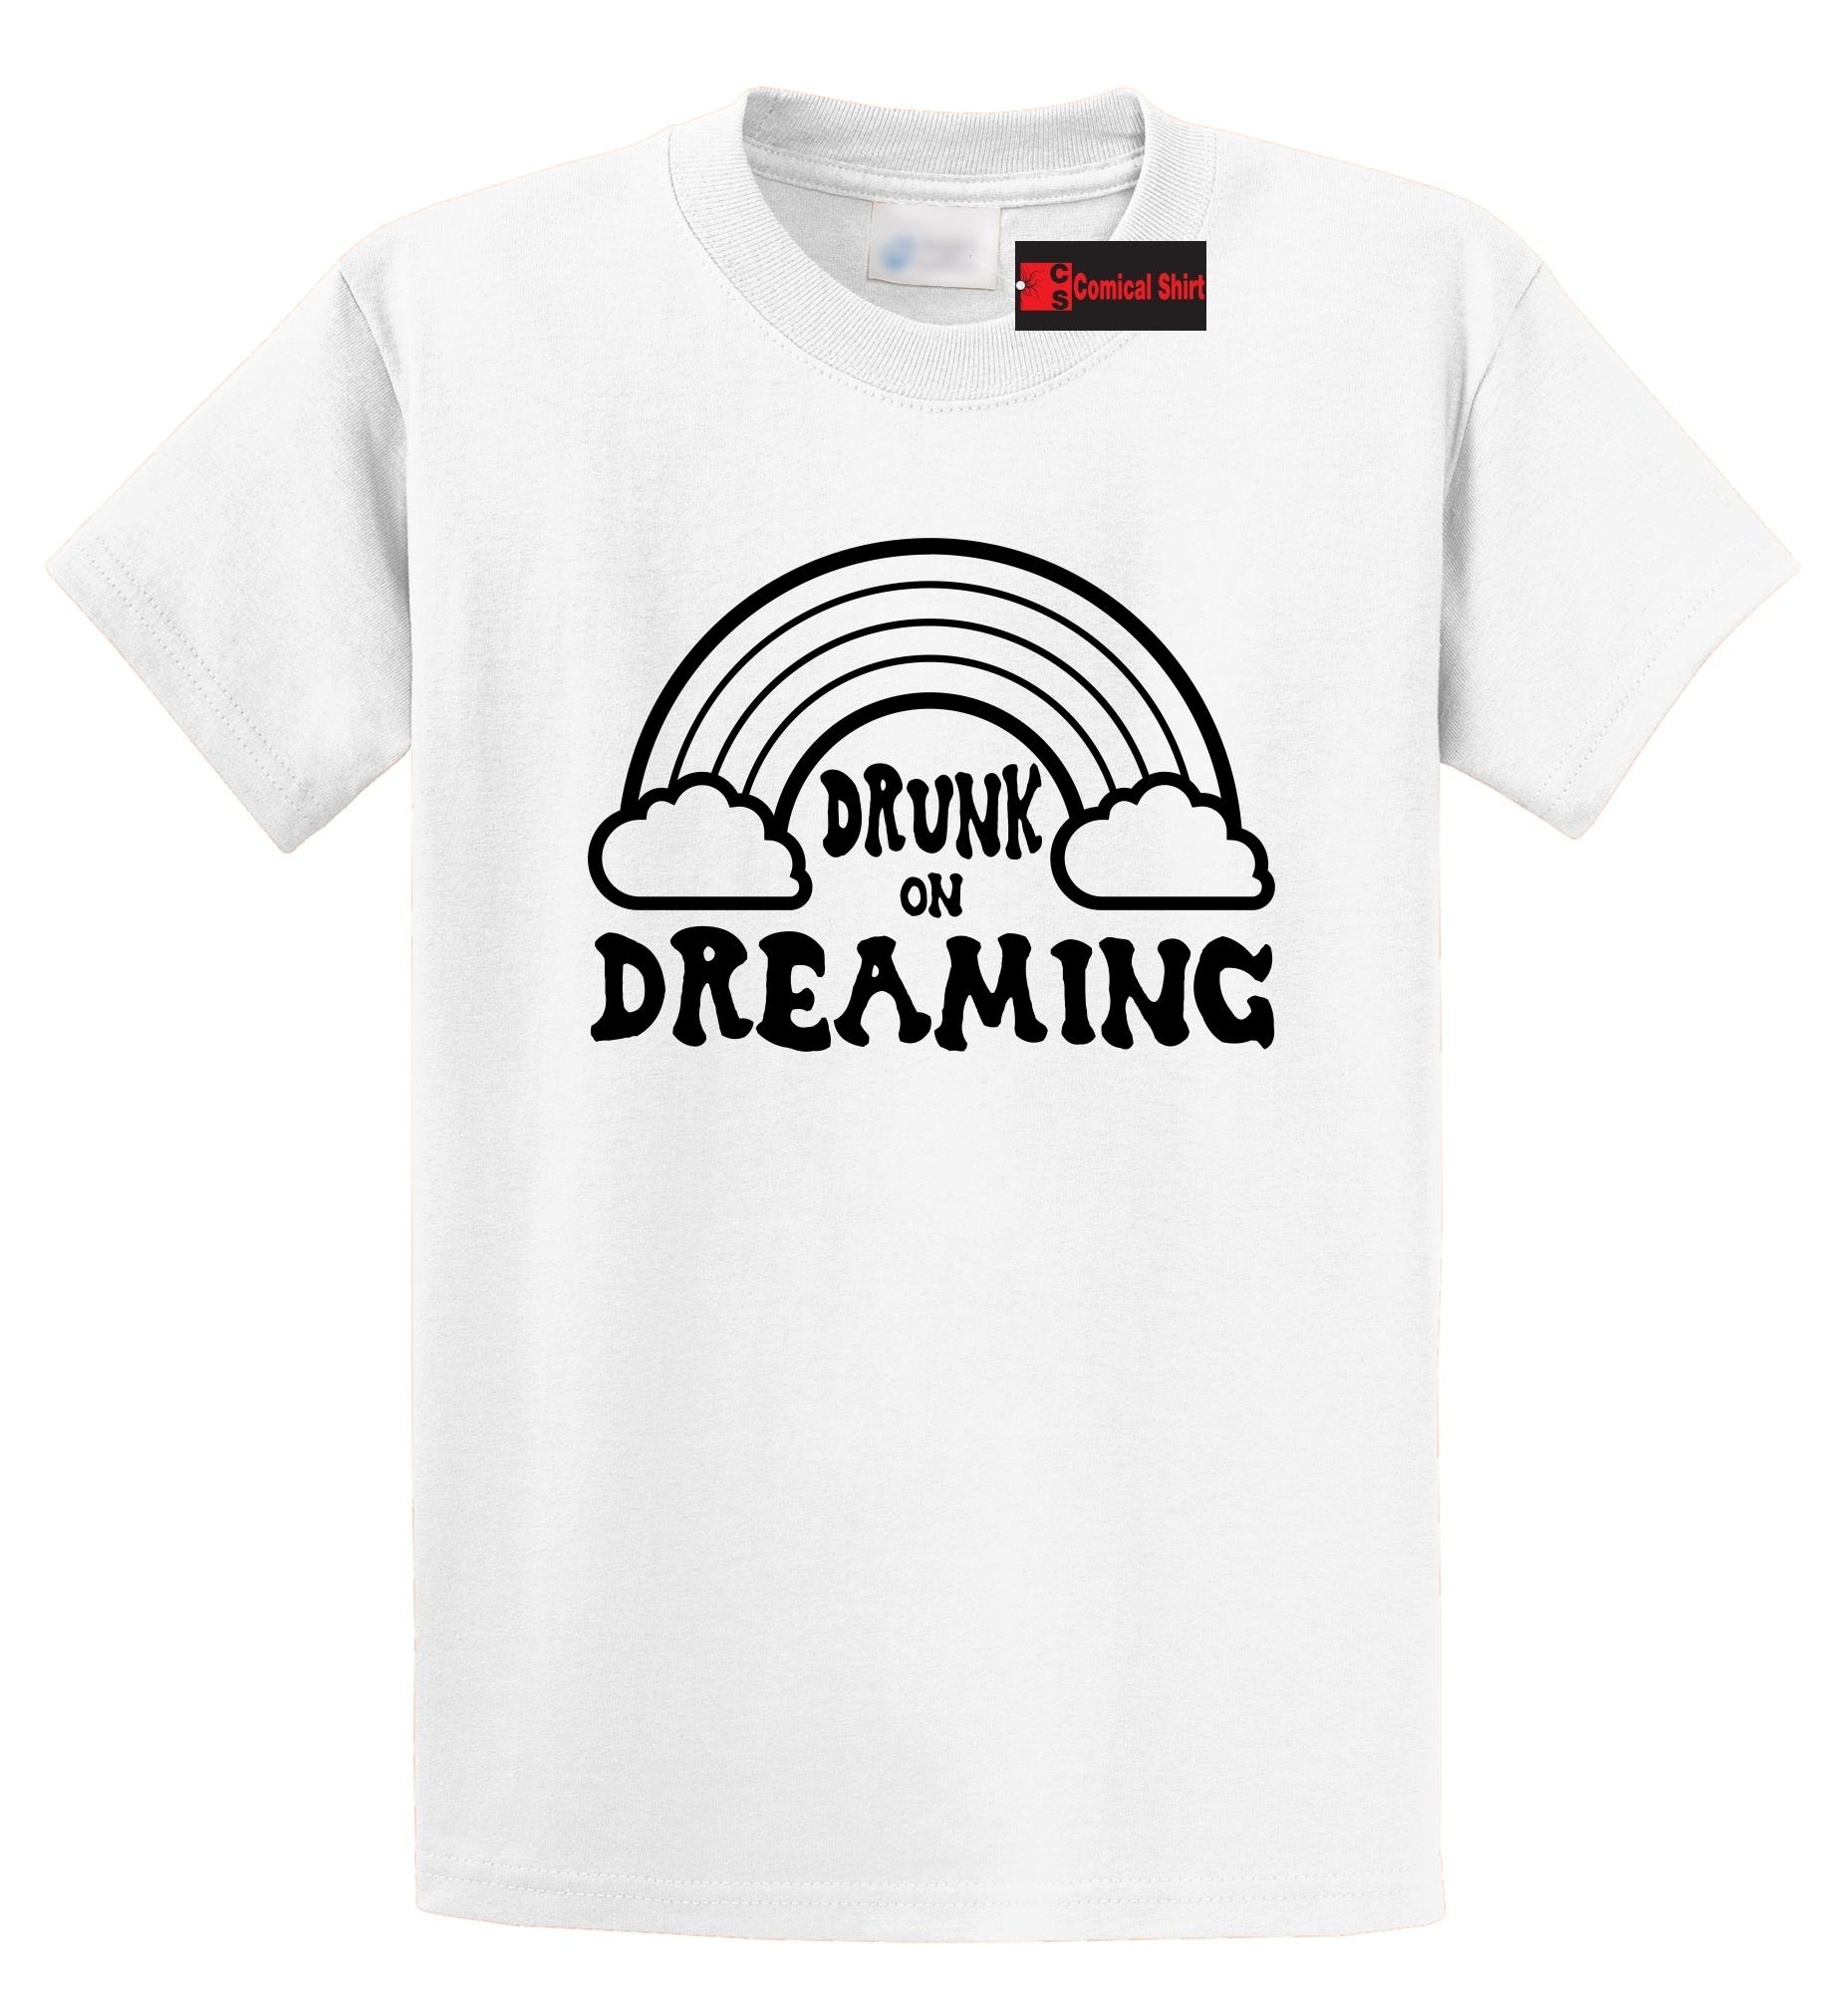 Drunk On Dreaming T Shirt Cute Graphic Tee Inspirational Motivational Tee S  5XL O Neck T Shirt Harajuku Tops Tees Coolest T Shirts Online Buy Shirt  Designs ... 1b711564e23